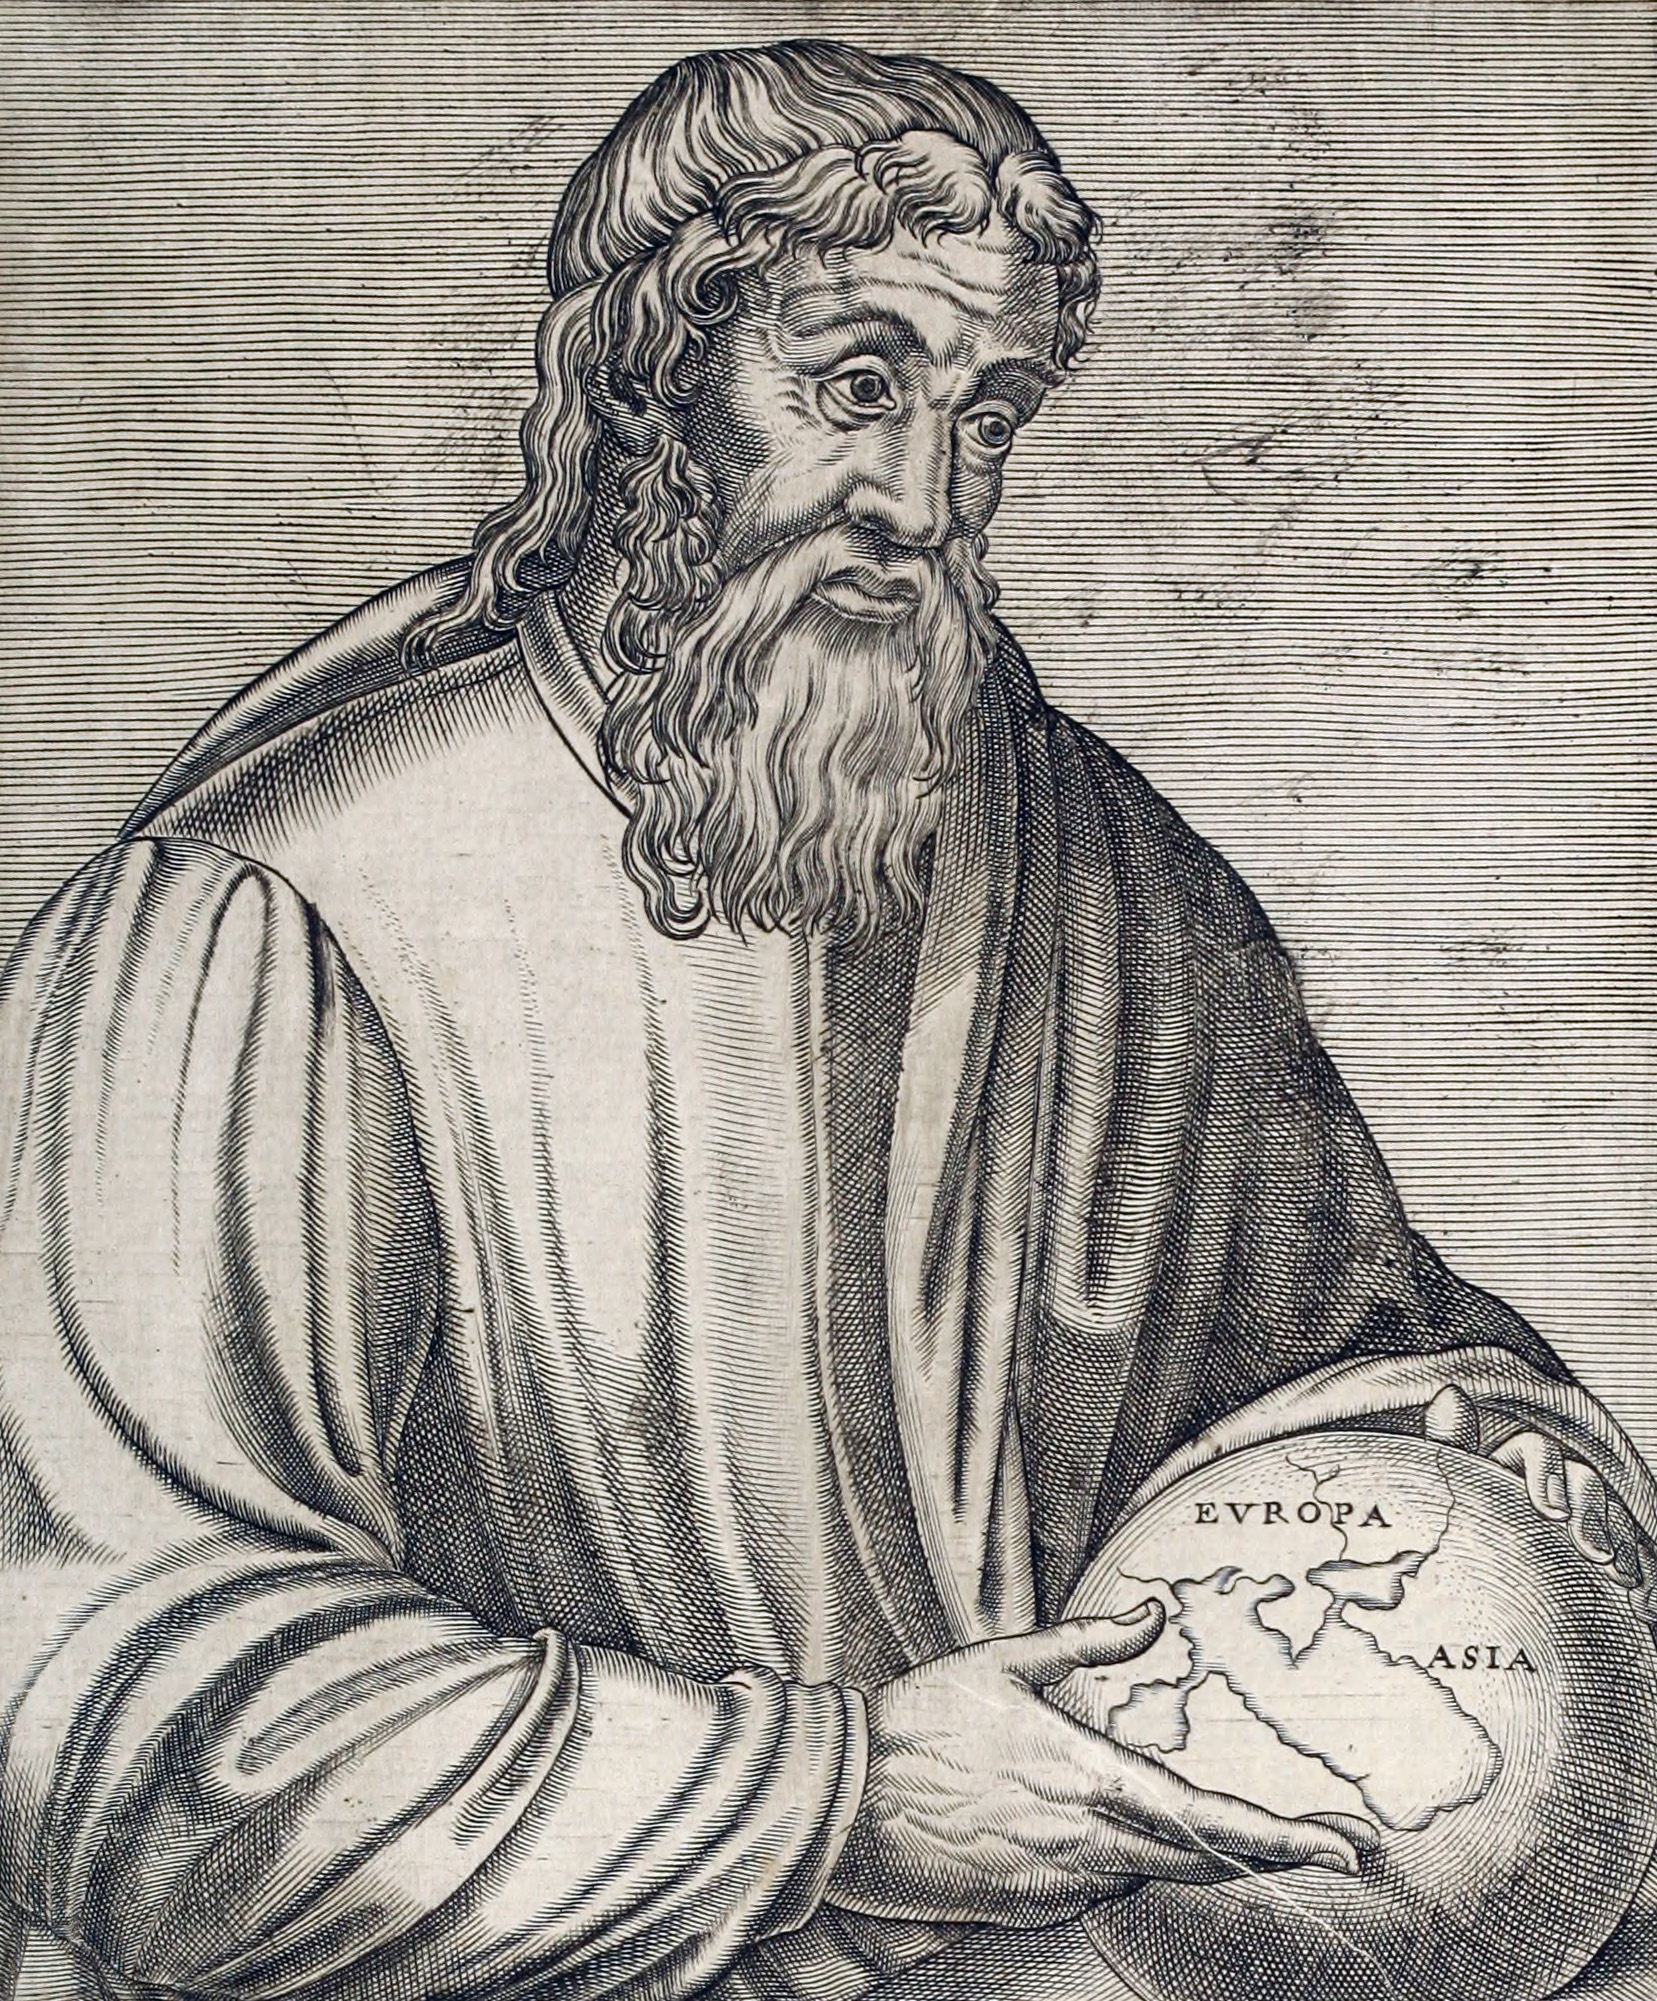 Strabo as depicted in a 16th-century engraving